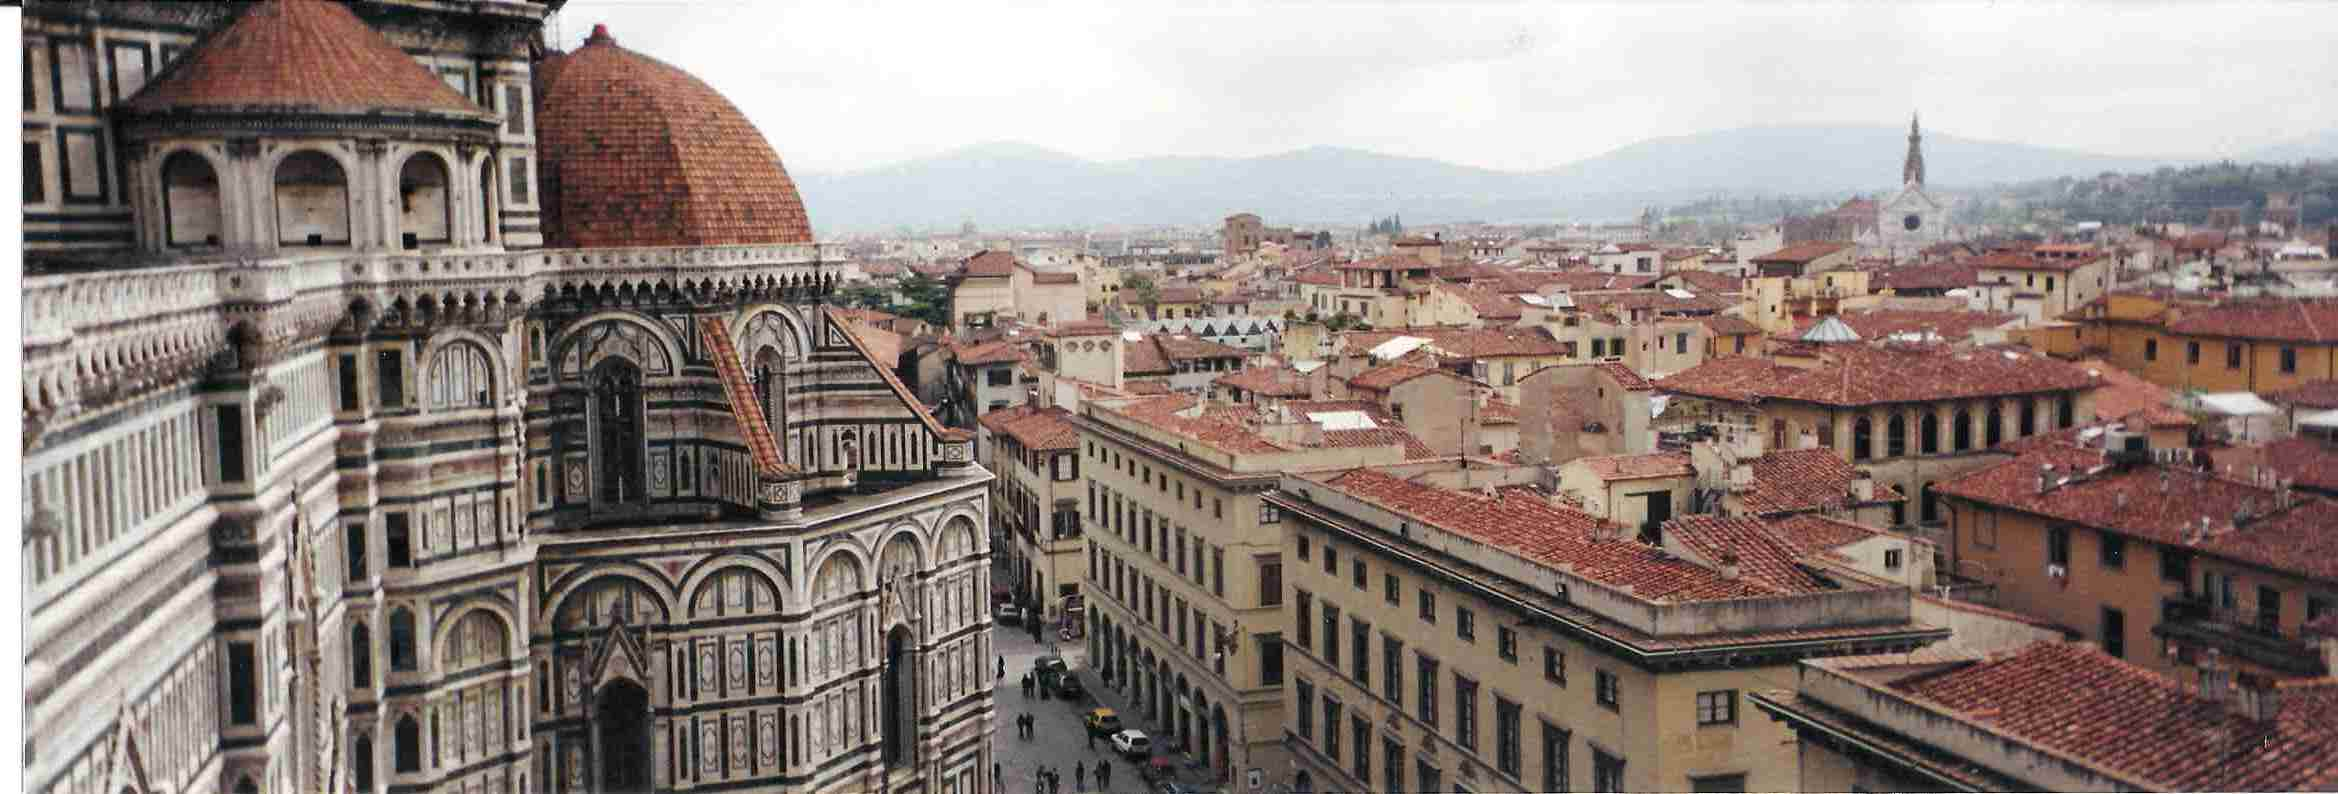 2000 Europe 00 Florence Italy